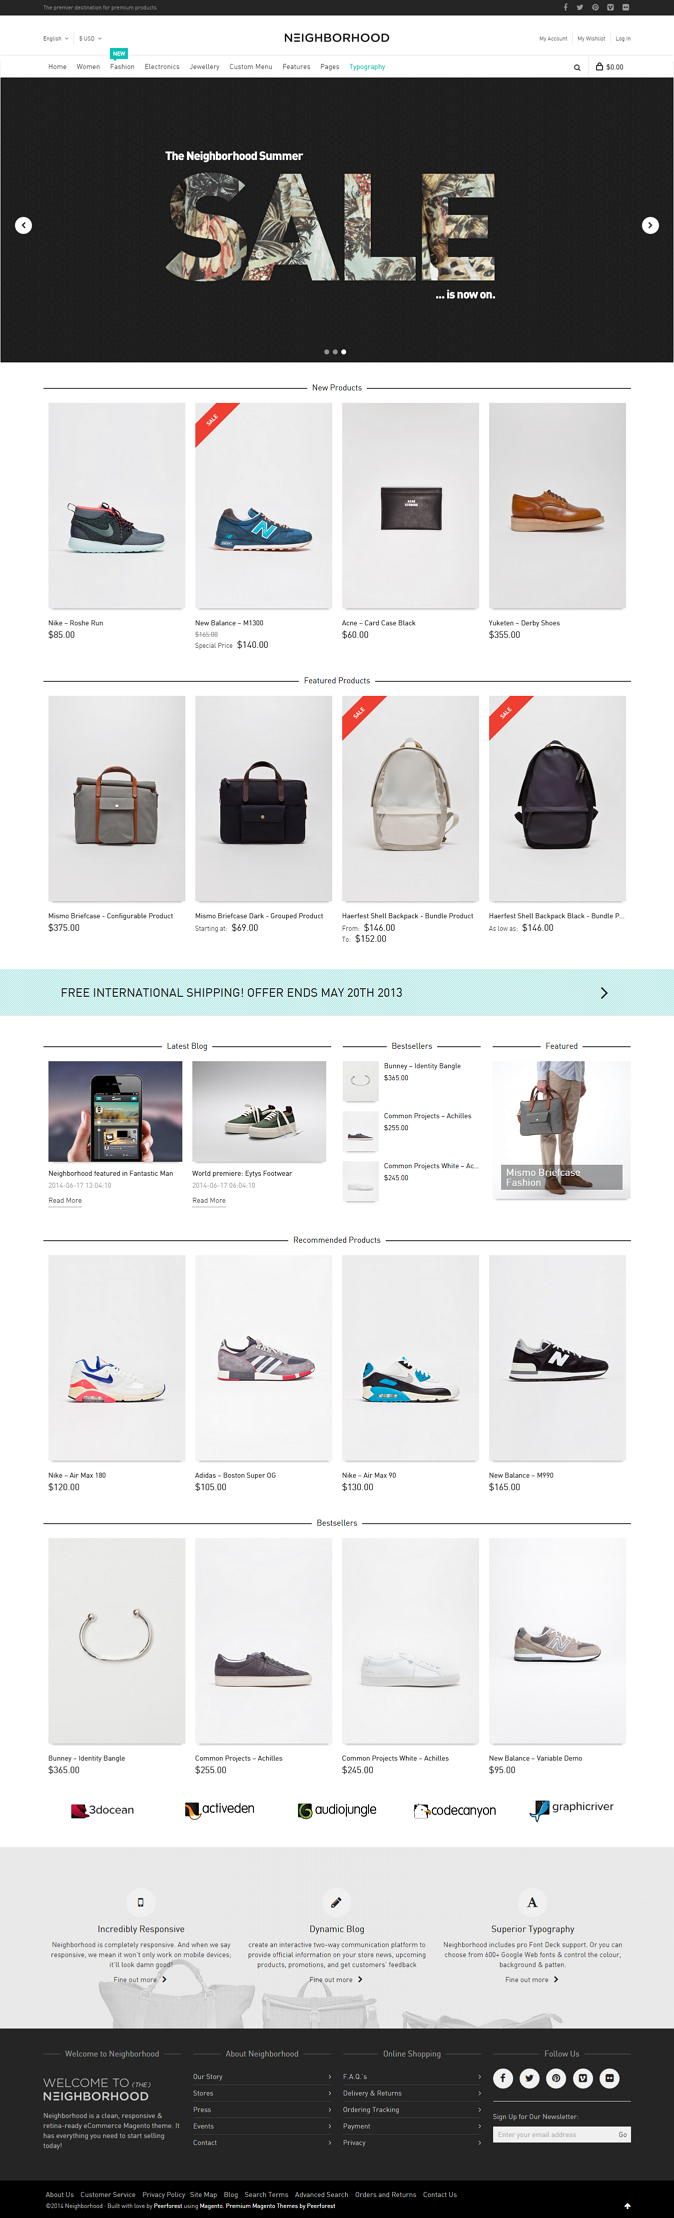 Neighborhood Magento Theme is suitable for Fashion, Clothing, Fragrance, Shoes, Makeup, Accessor ...